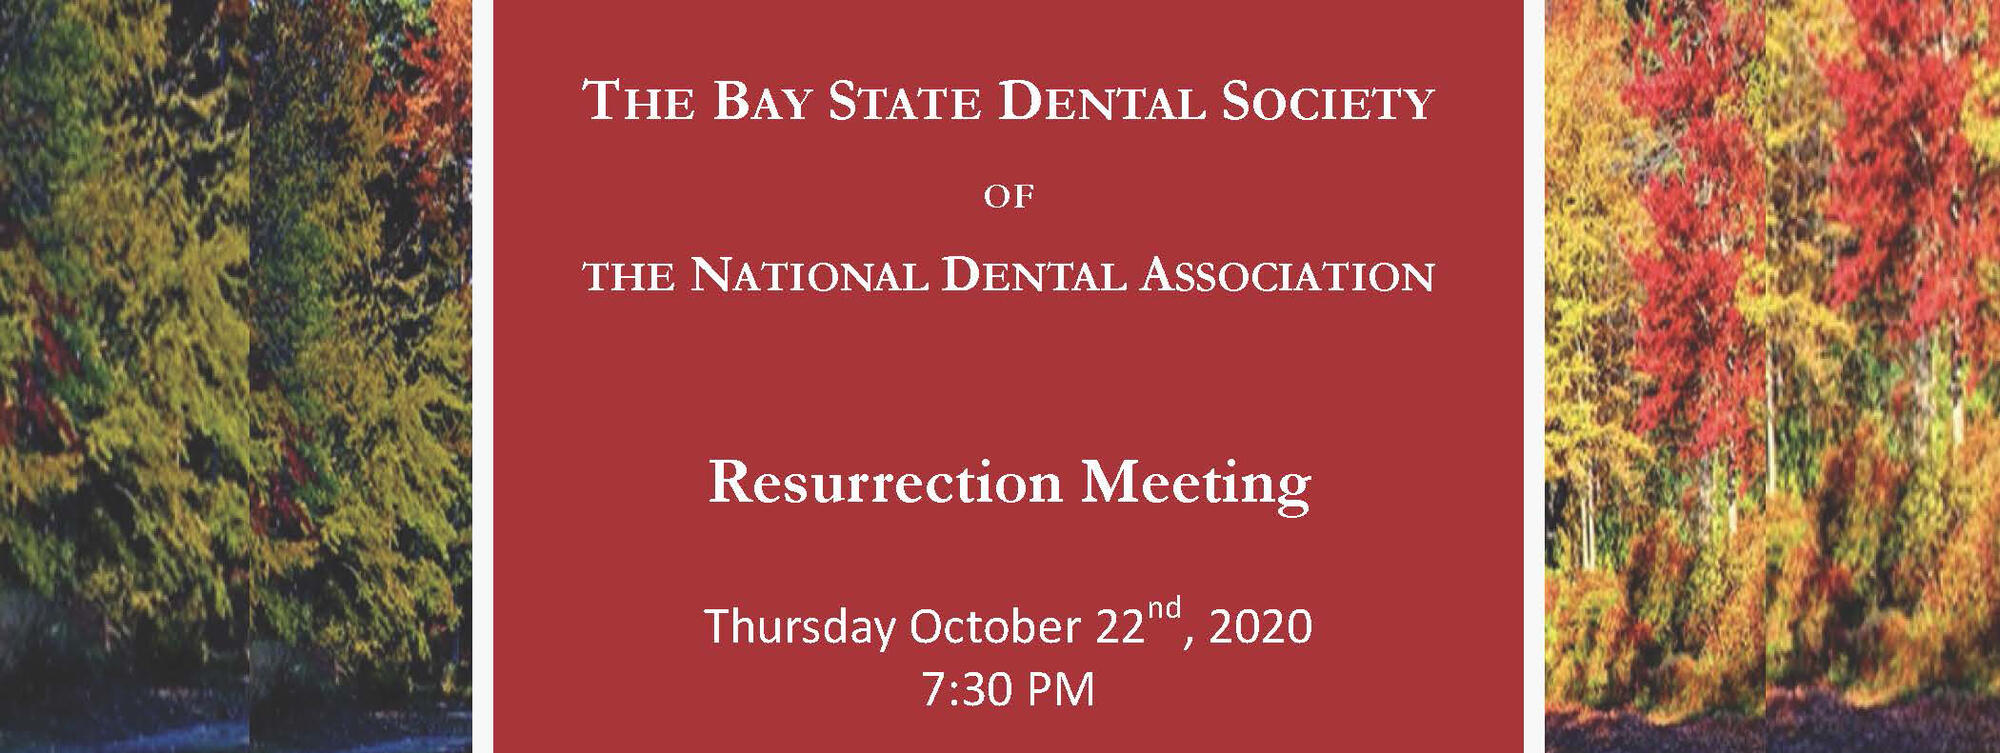 Bay State Dental Society header